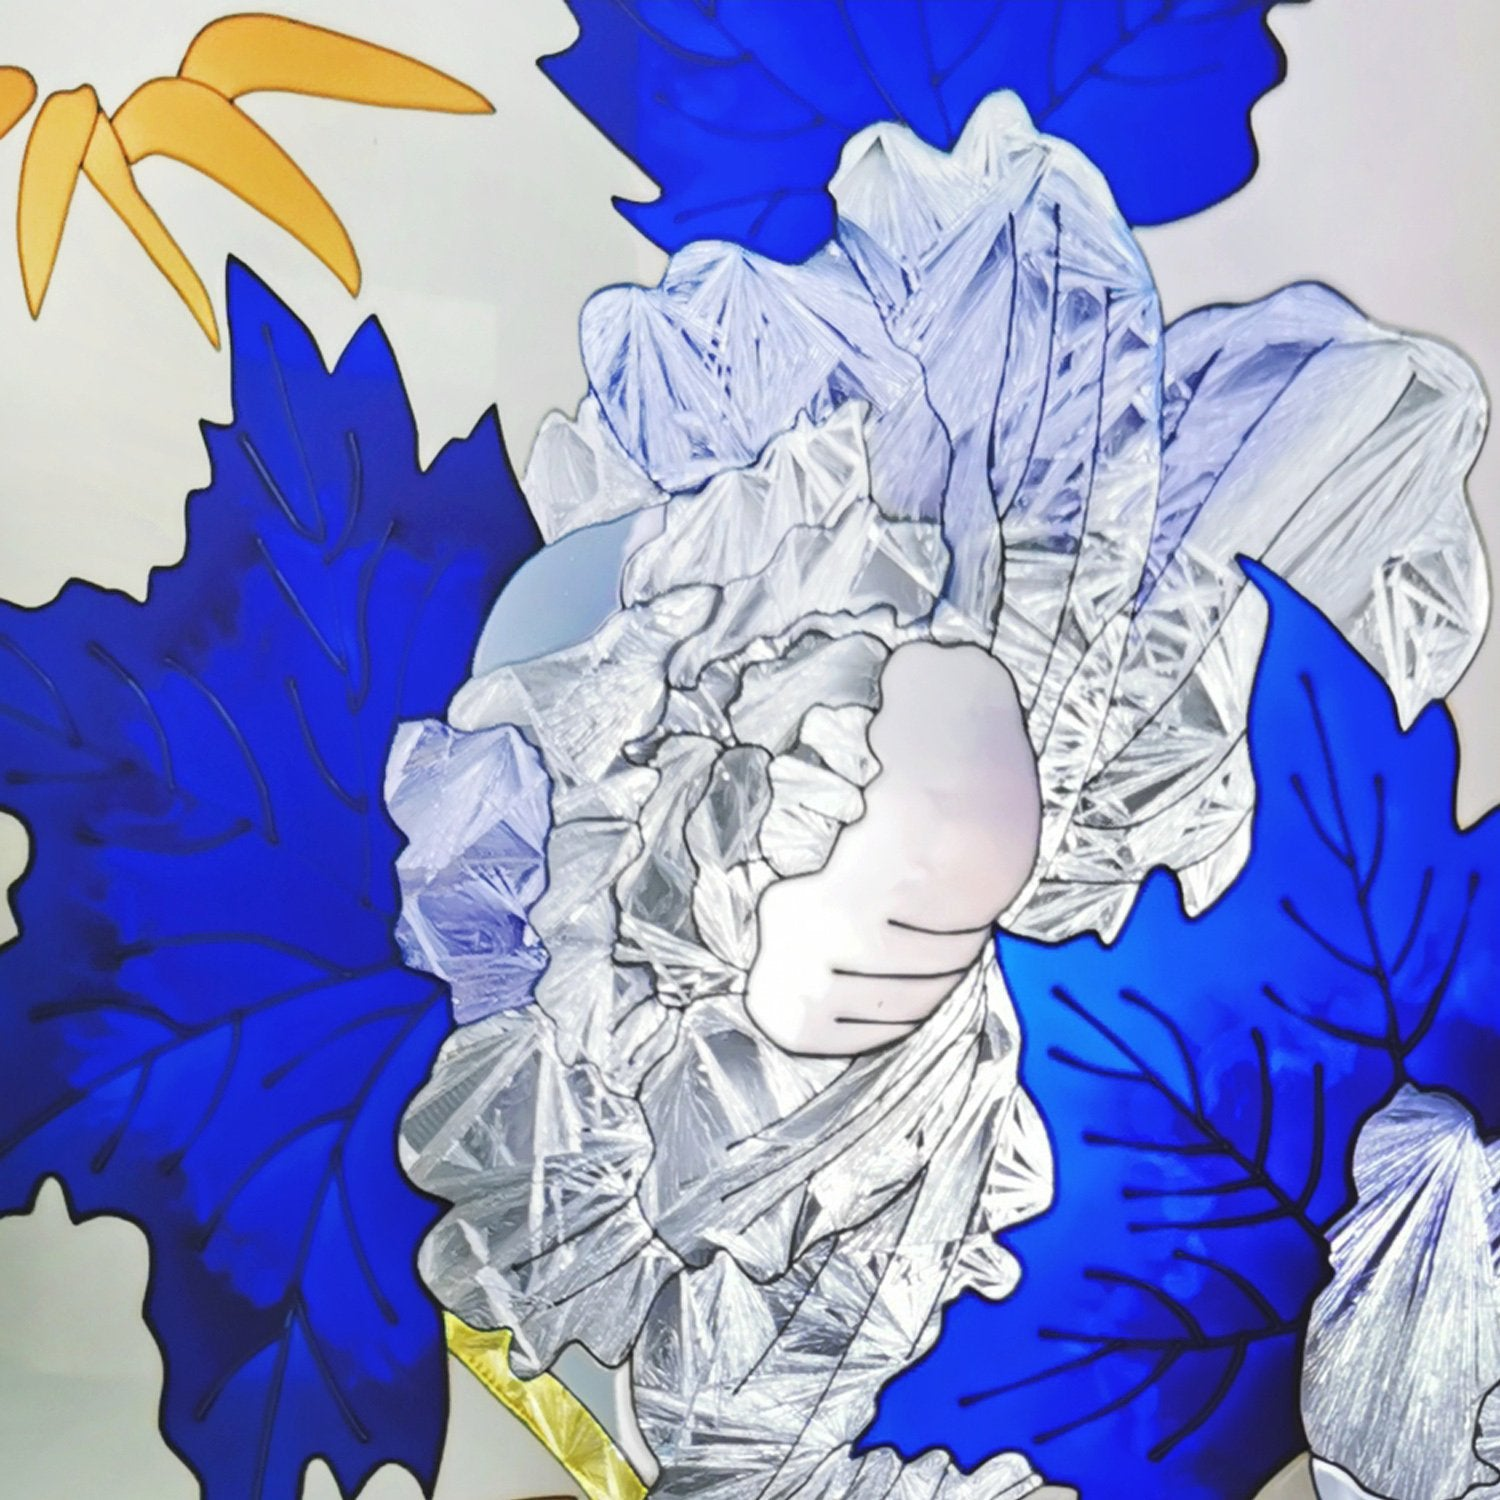 ACEVER_ARTS_GLASS_ABSTRACT_BLUE_FLOWER